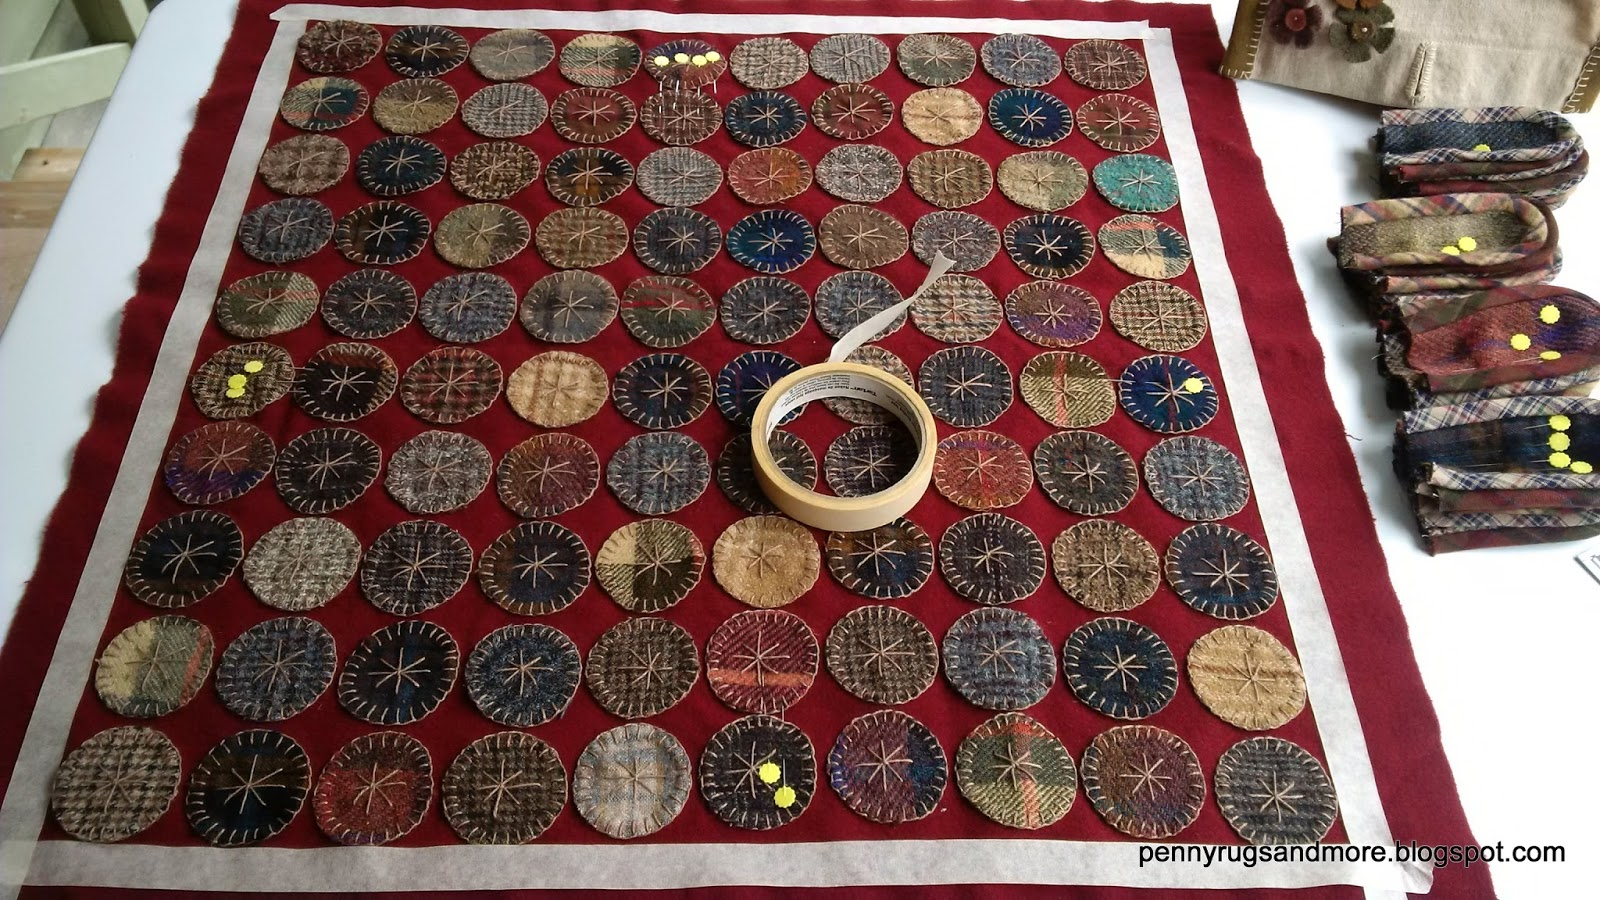 Penny rugs and more plaid tongue rug tutorial for Rugs rugs and more rugs